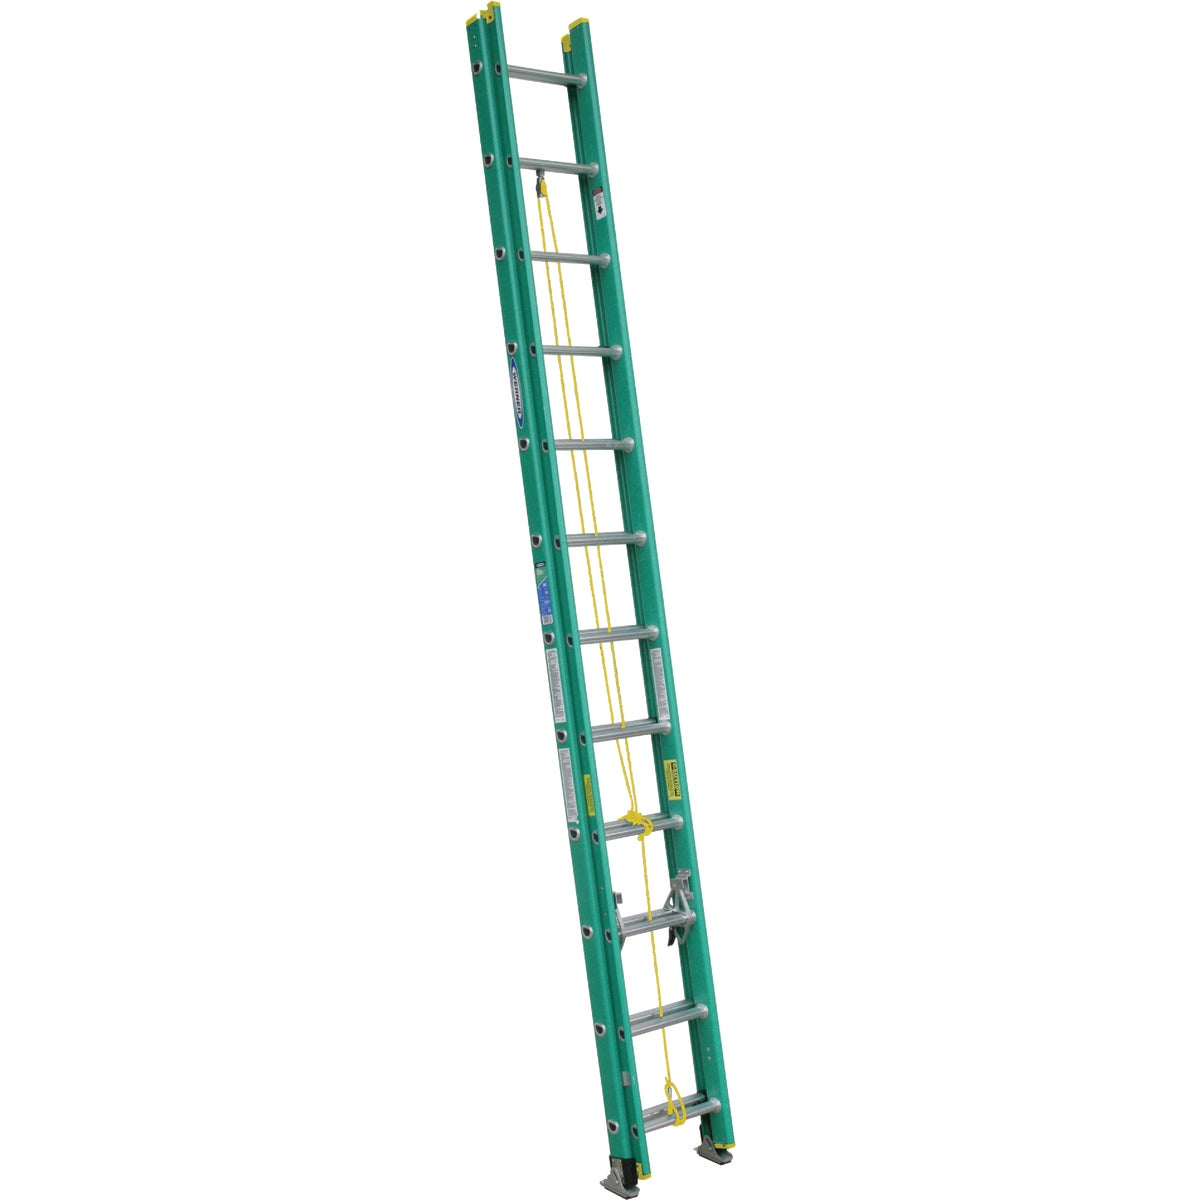 T-2 24' FBGL EXT LADDER